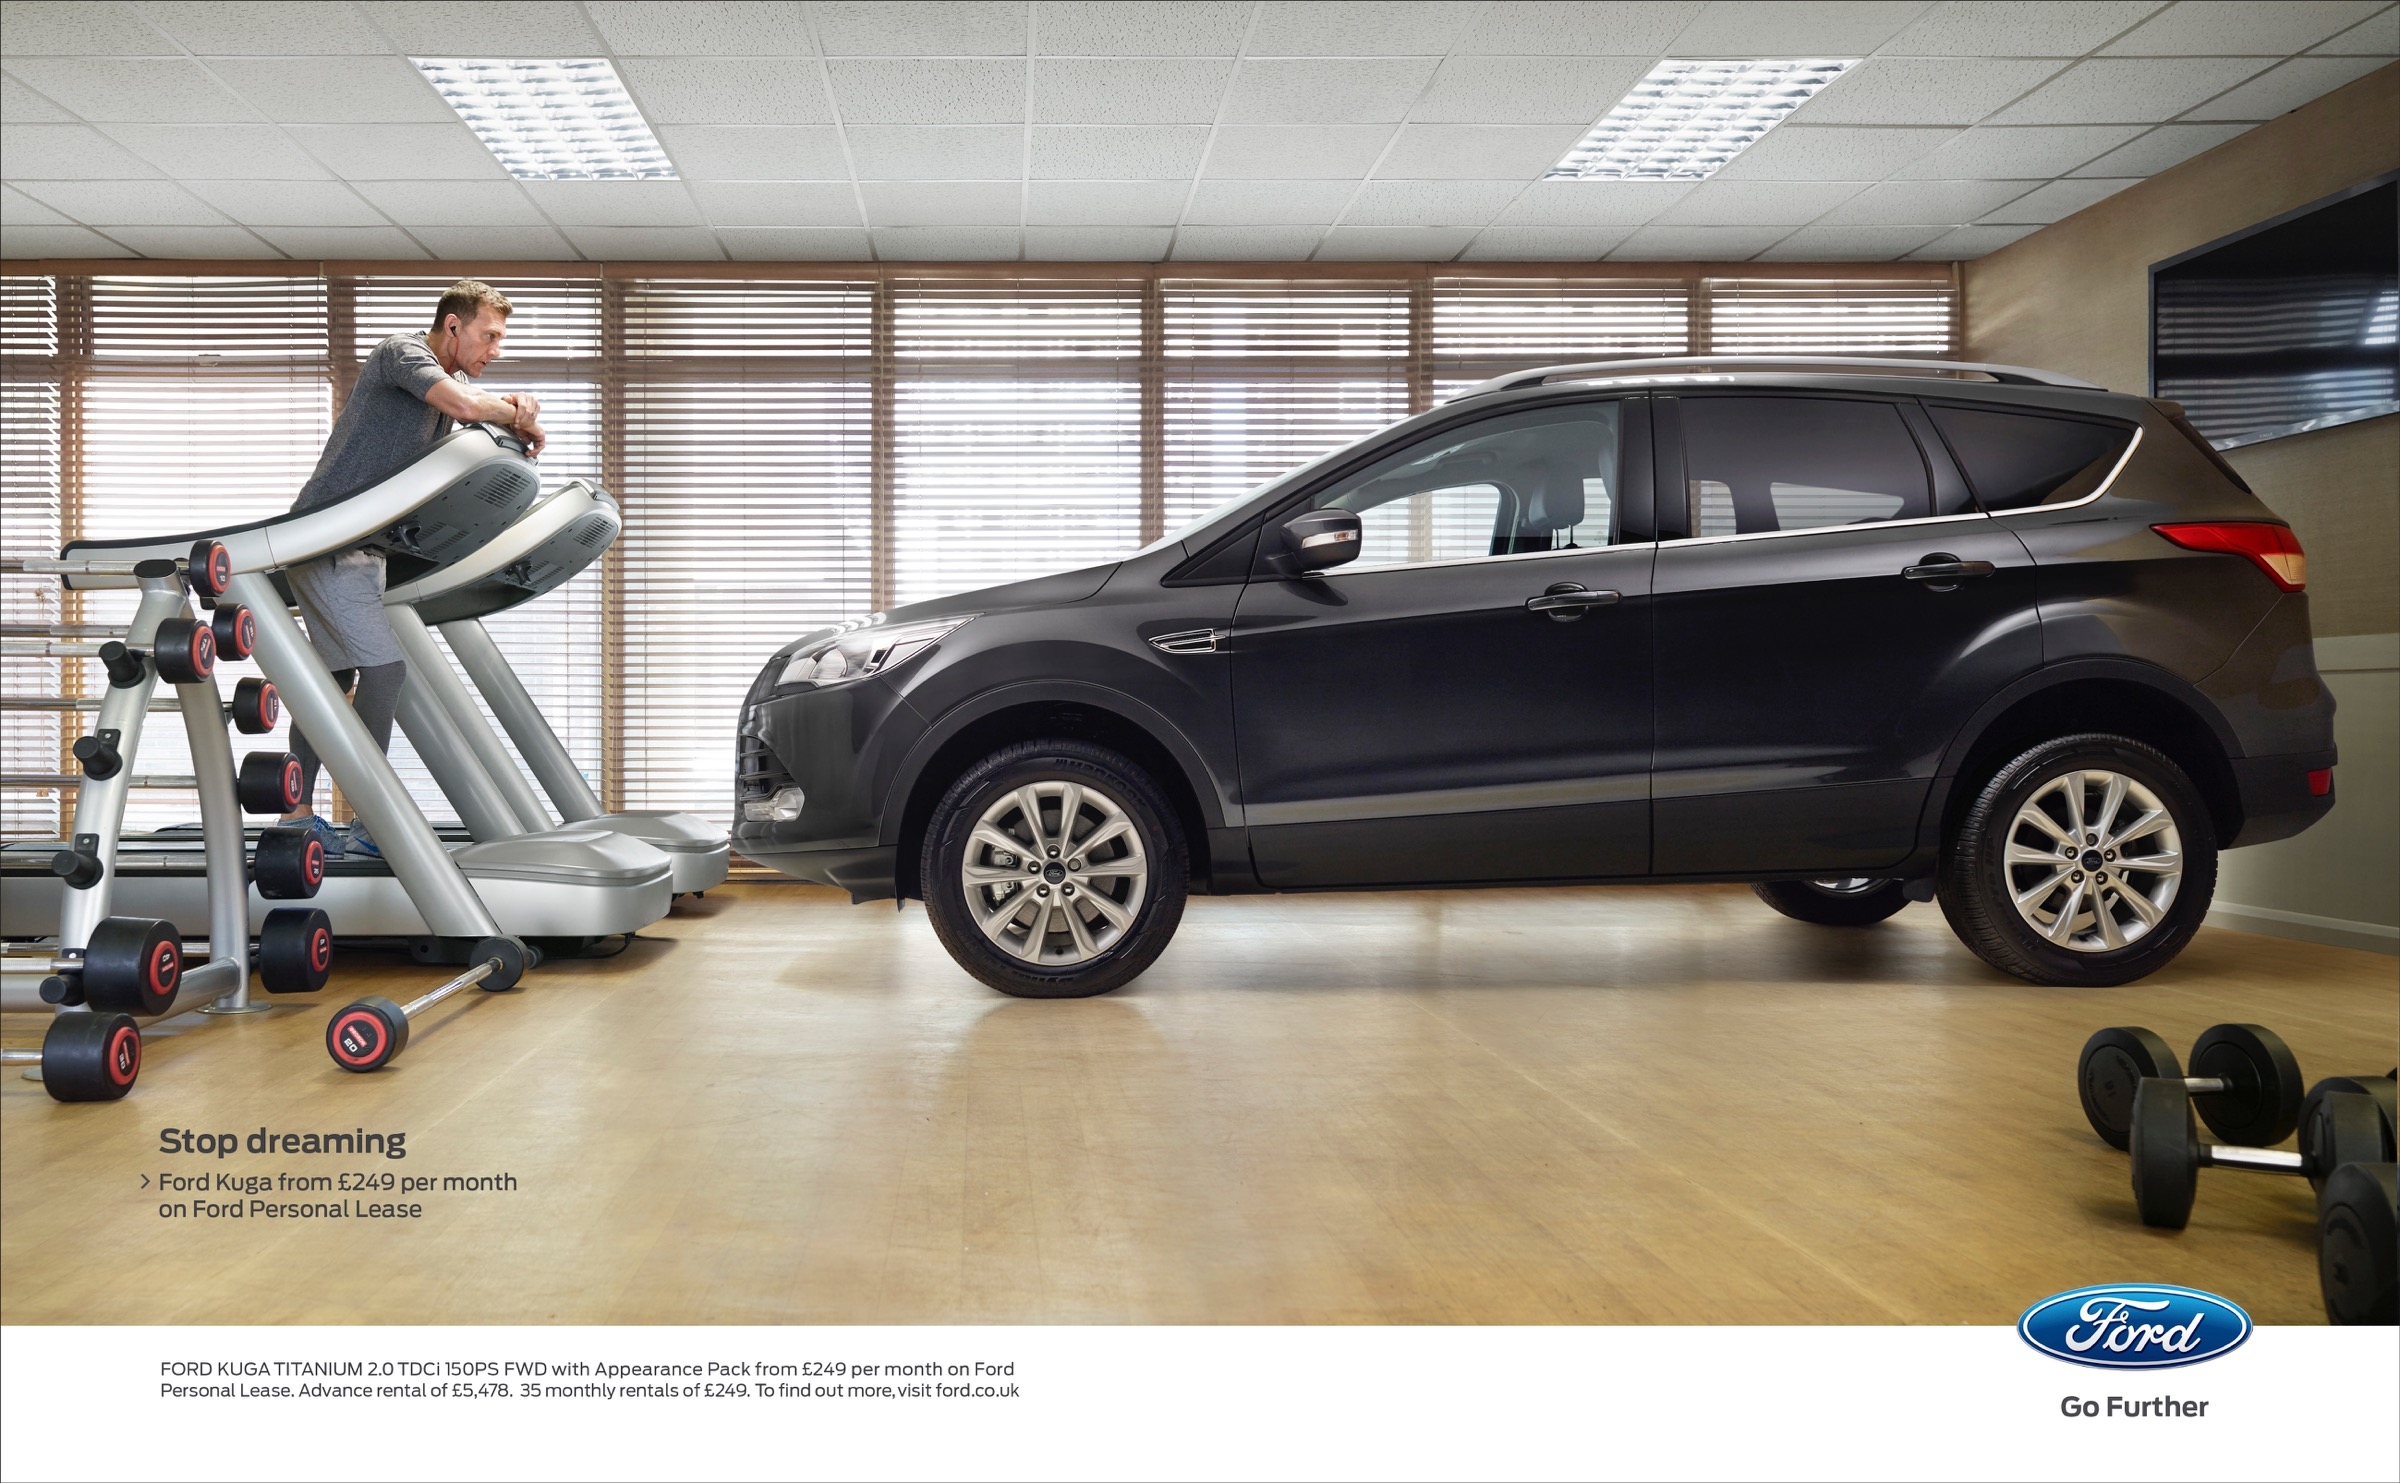 Ford Print Advert By Blue Hive Stop Dreaming 3 Ads Of The World